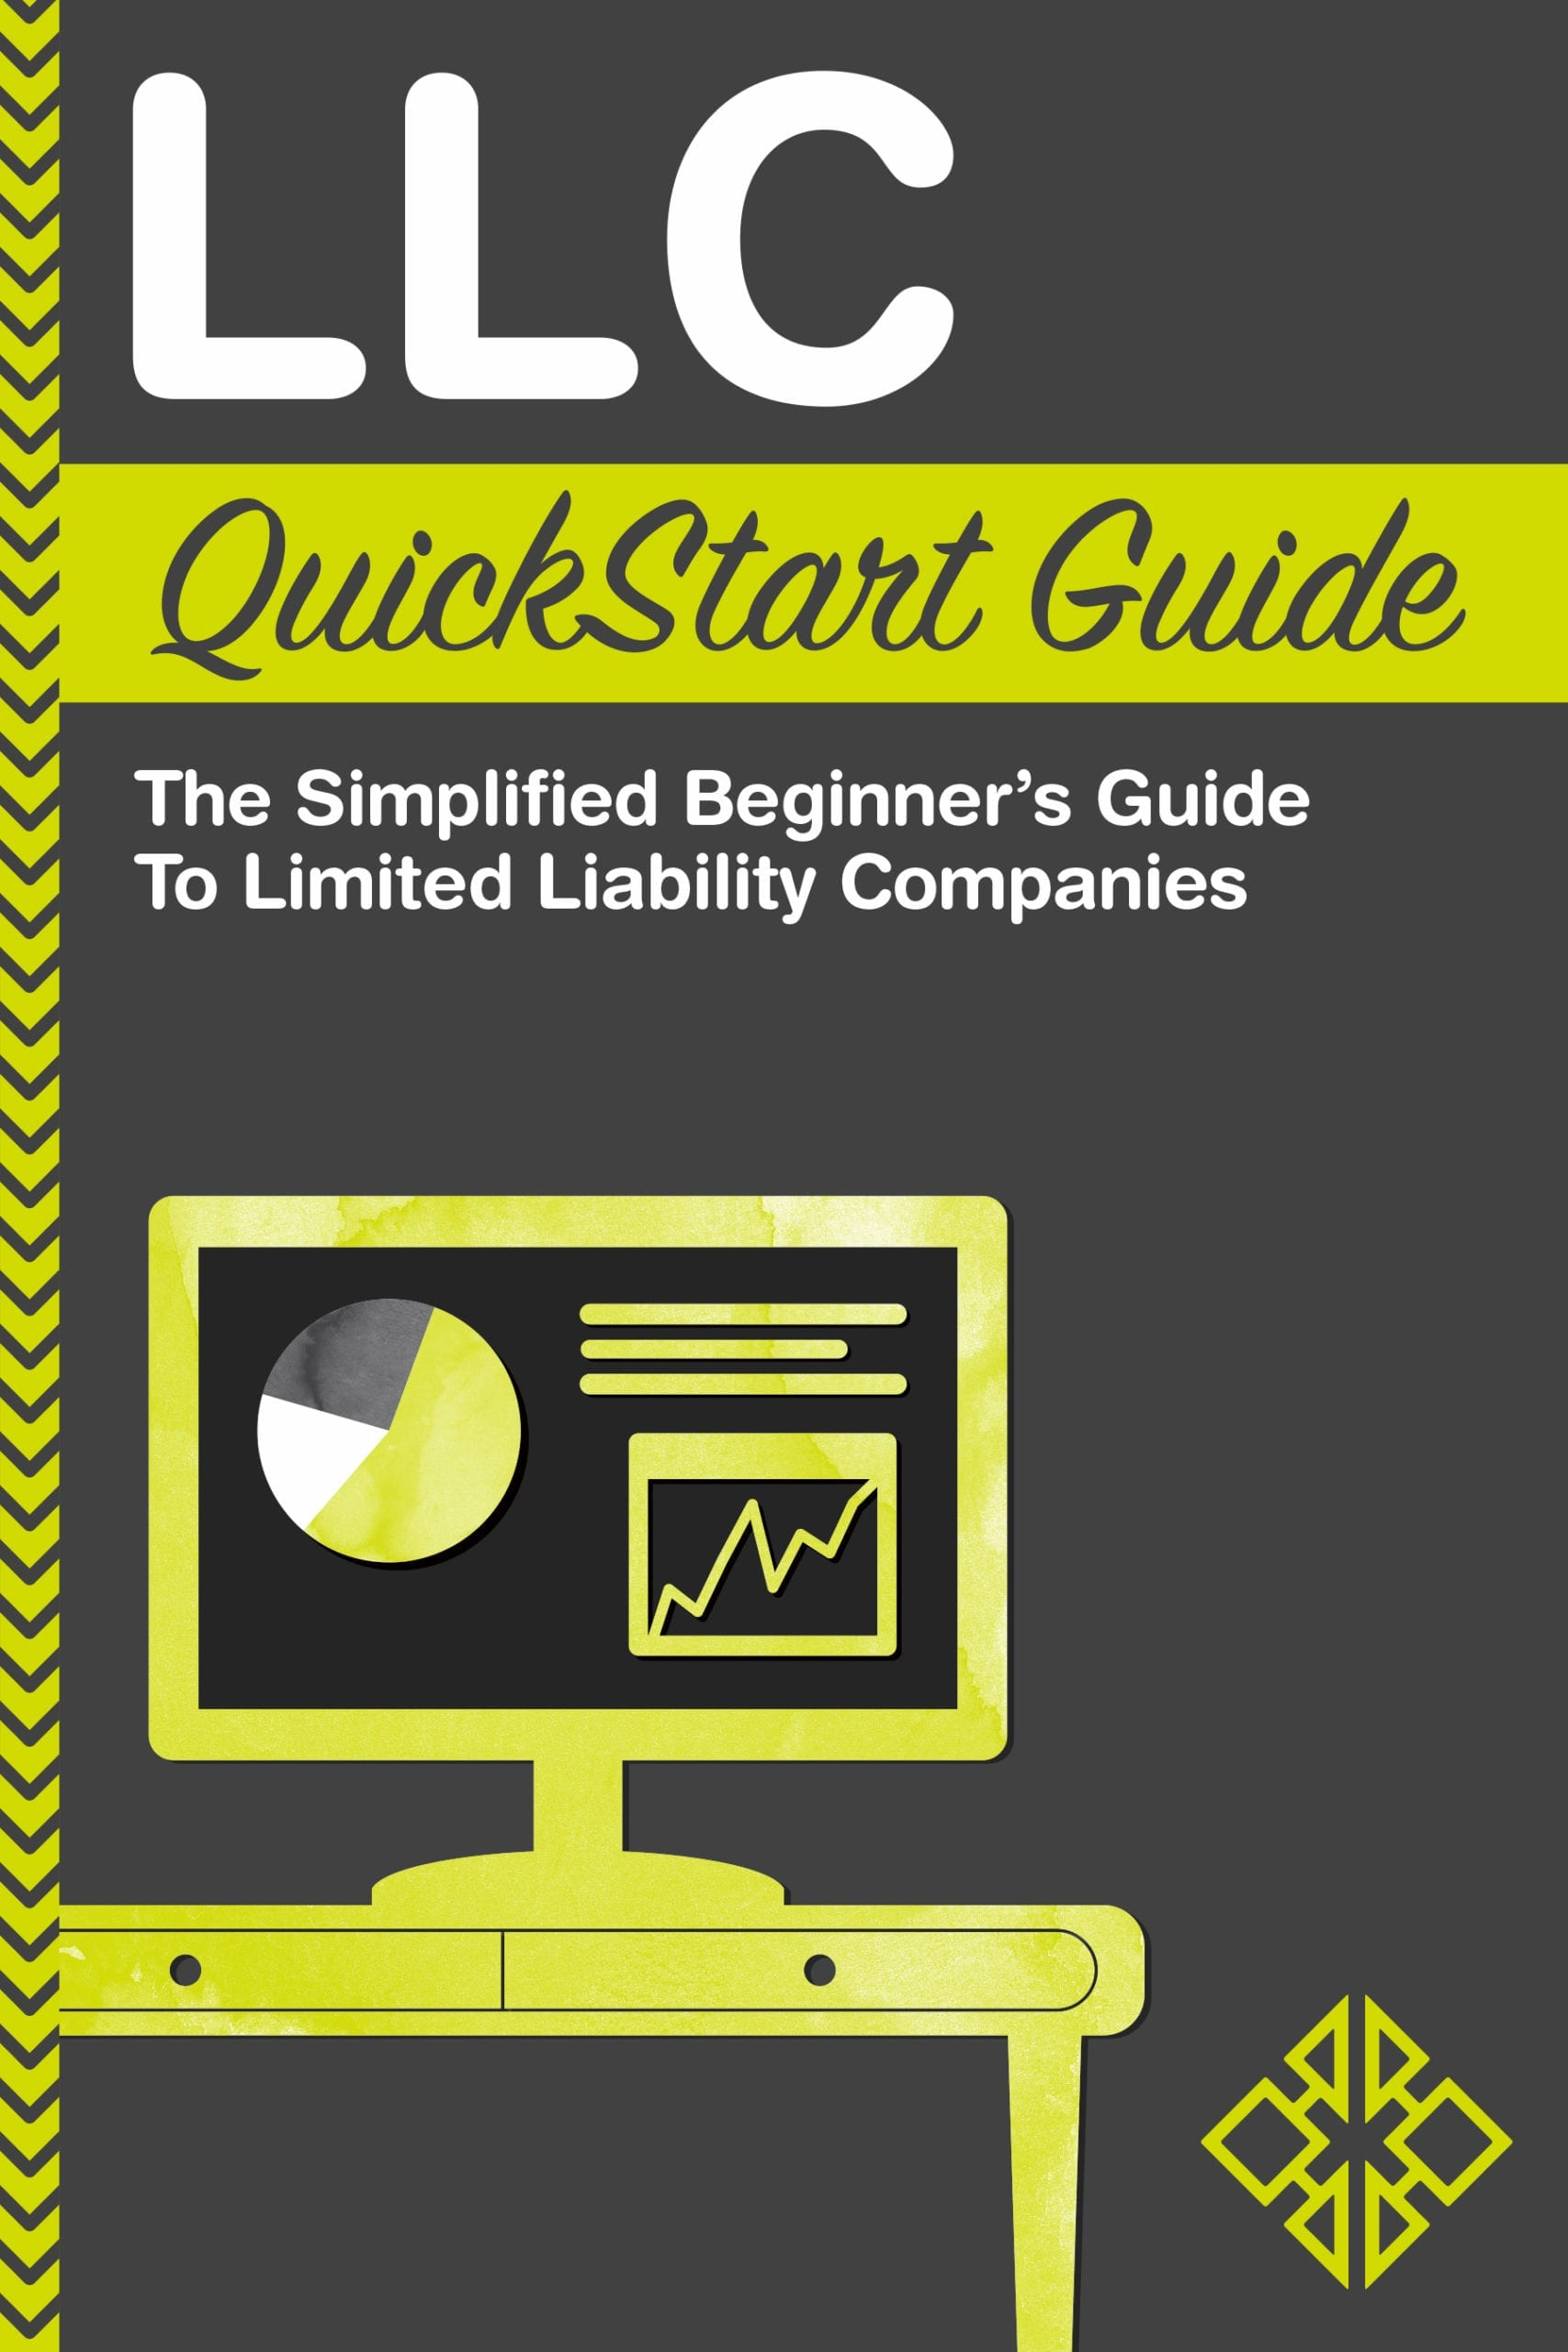 LLC QuickStart Guide - Available Now Via Publisher ClydeBank Media